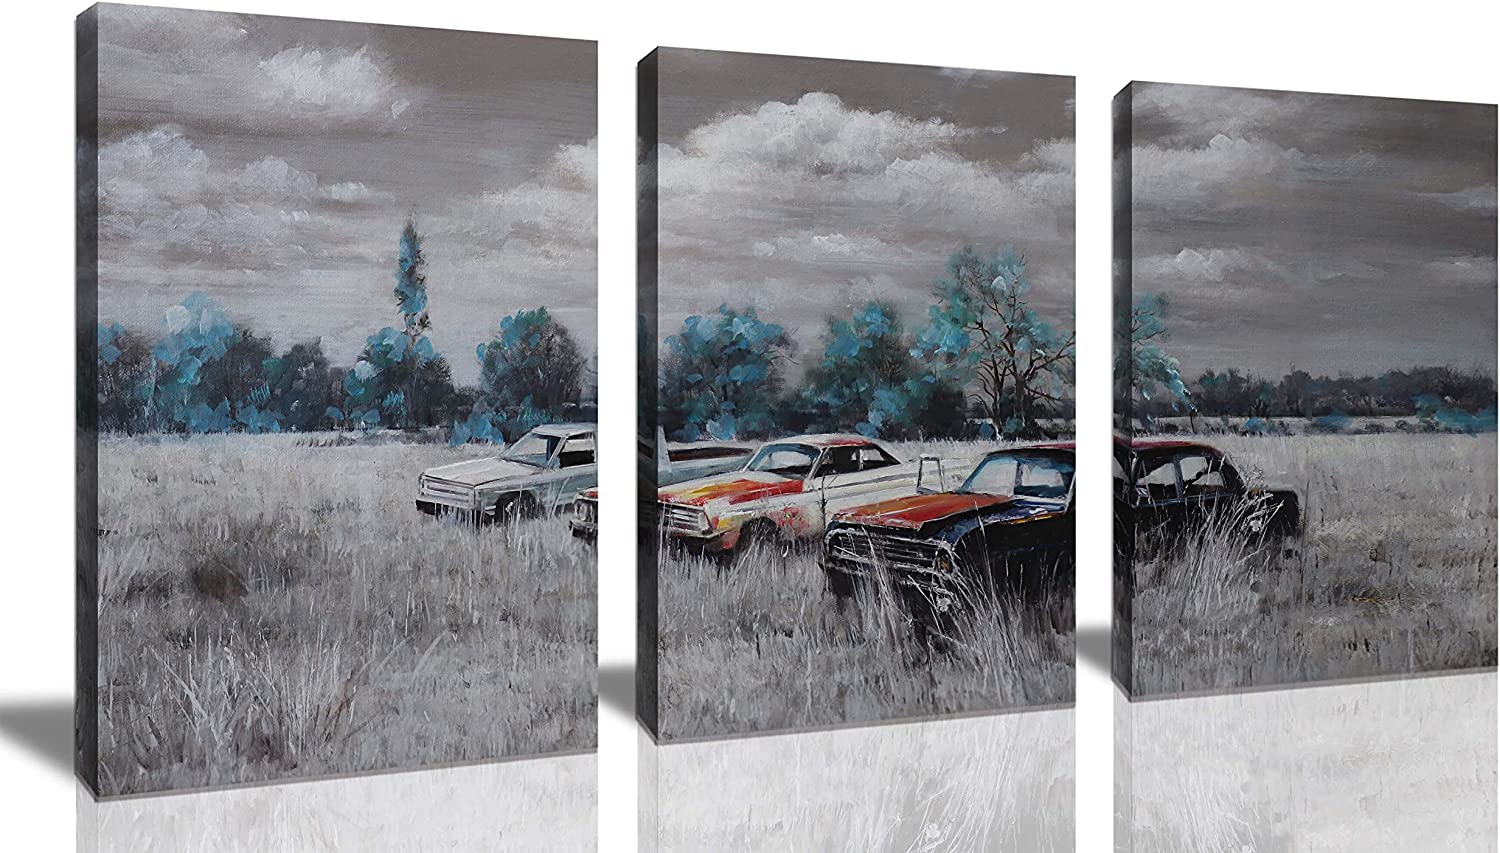 Wall Art For Living Room Farmhouse Decor Rustic Wall Art Theme Artwork Black And White Teal Tree Weed Art Vintage Car Decor 3 Piece Canvas Wall Art Wall Decor For Bedroom Size 12x16 Each Panel